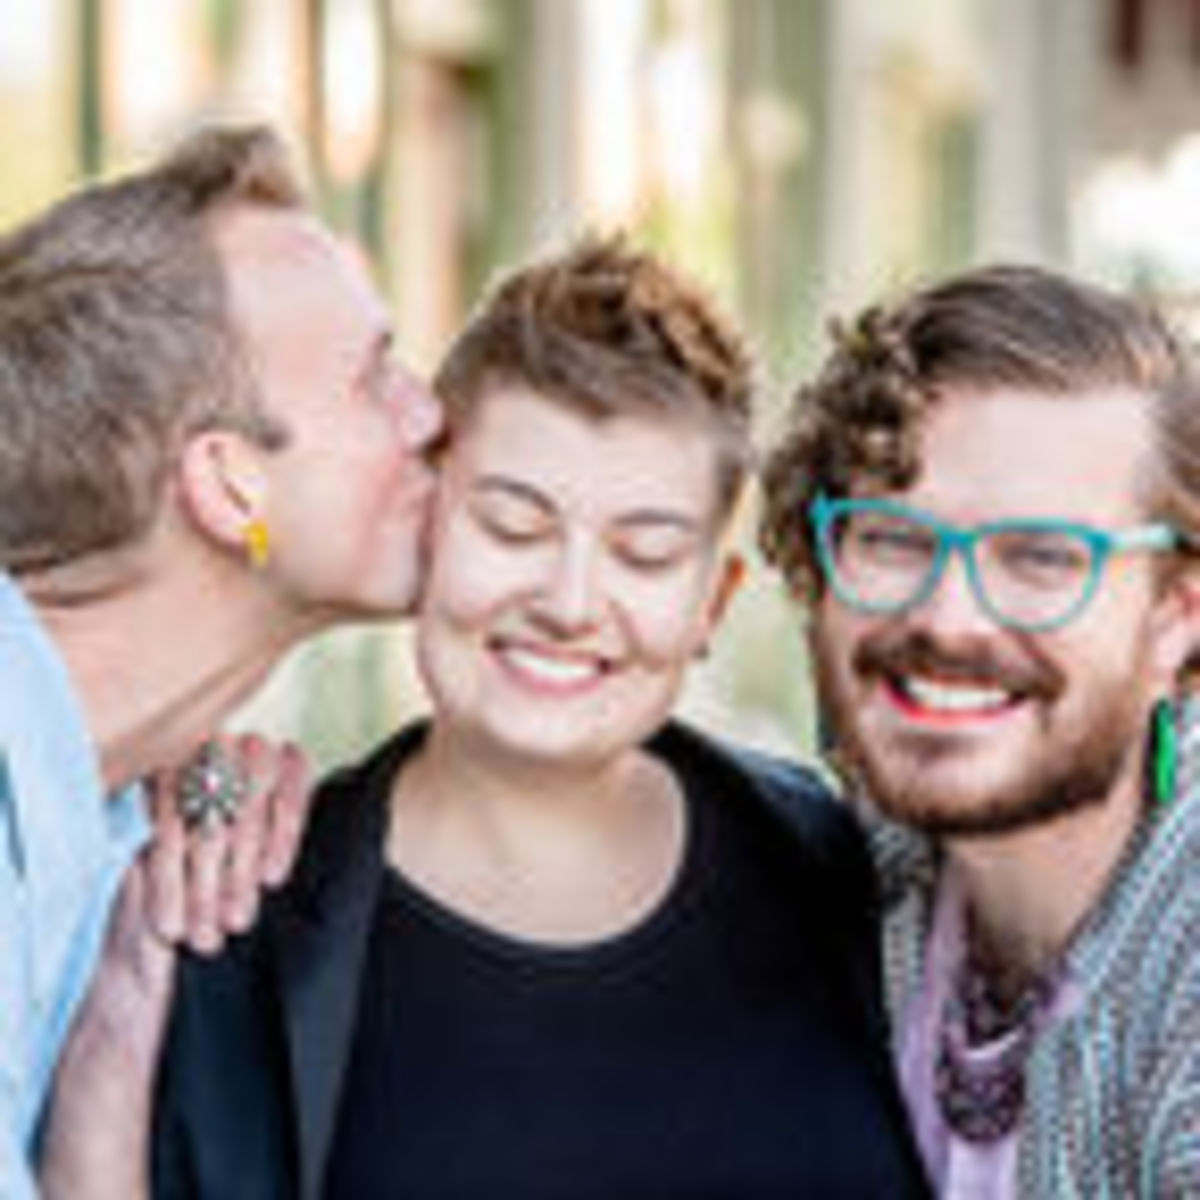 A Guide to Genderqueer, Non-Binary, and Genderfluid Identity